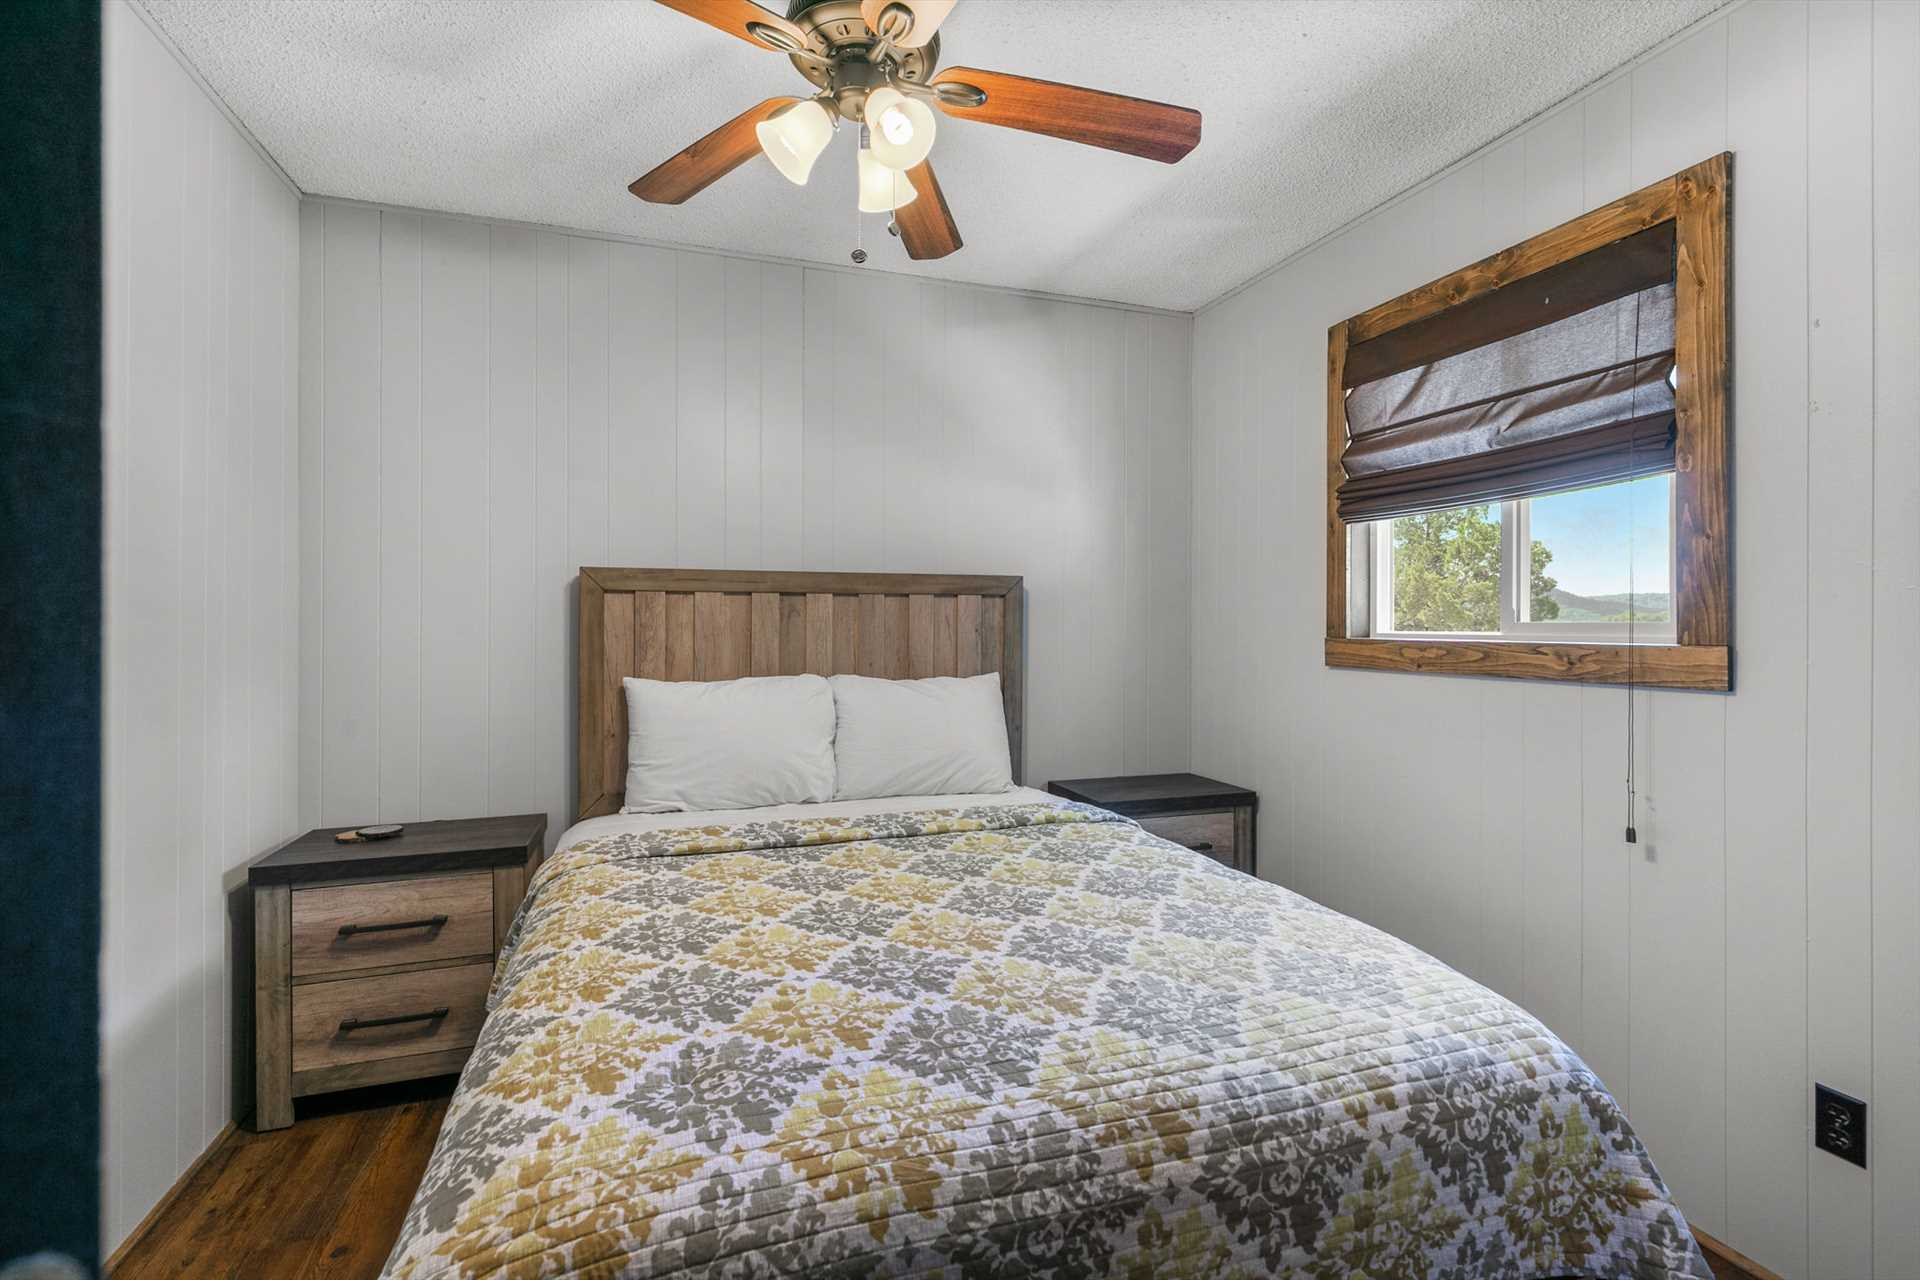 The second bedroom has a queen size bed. (Cabin 10)